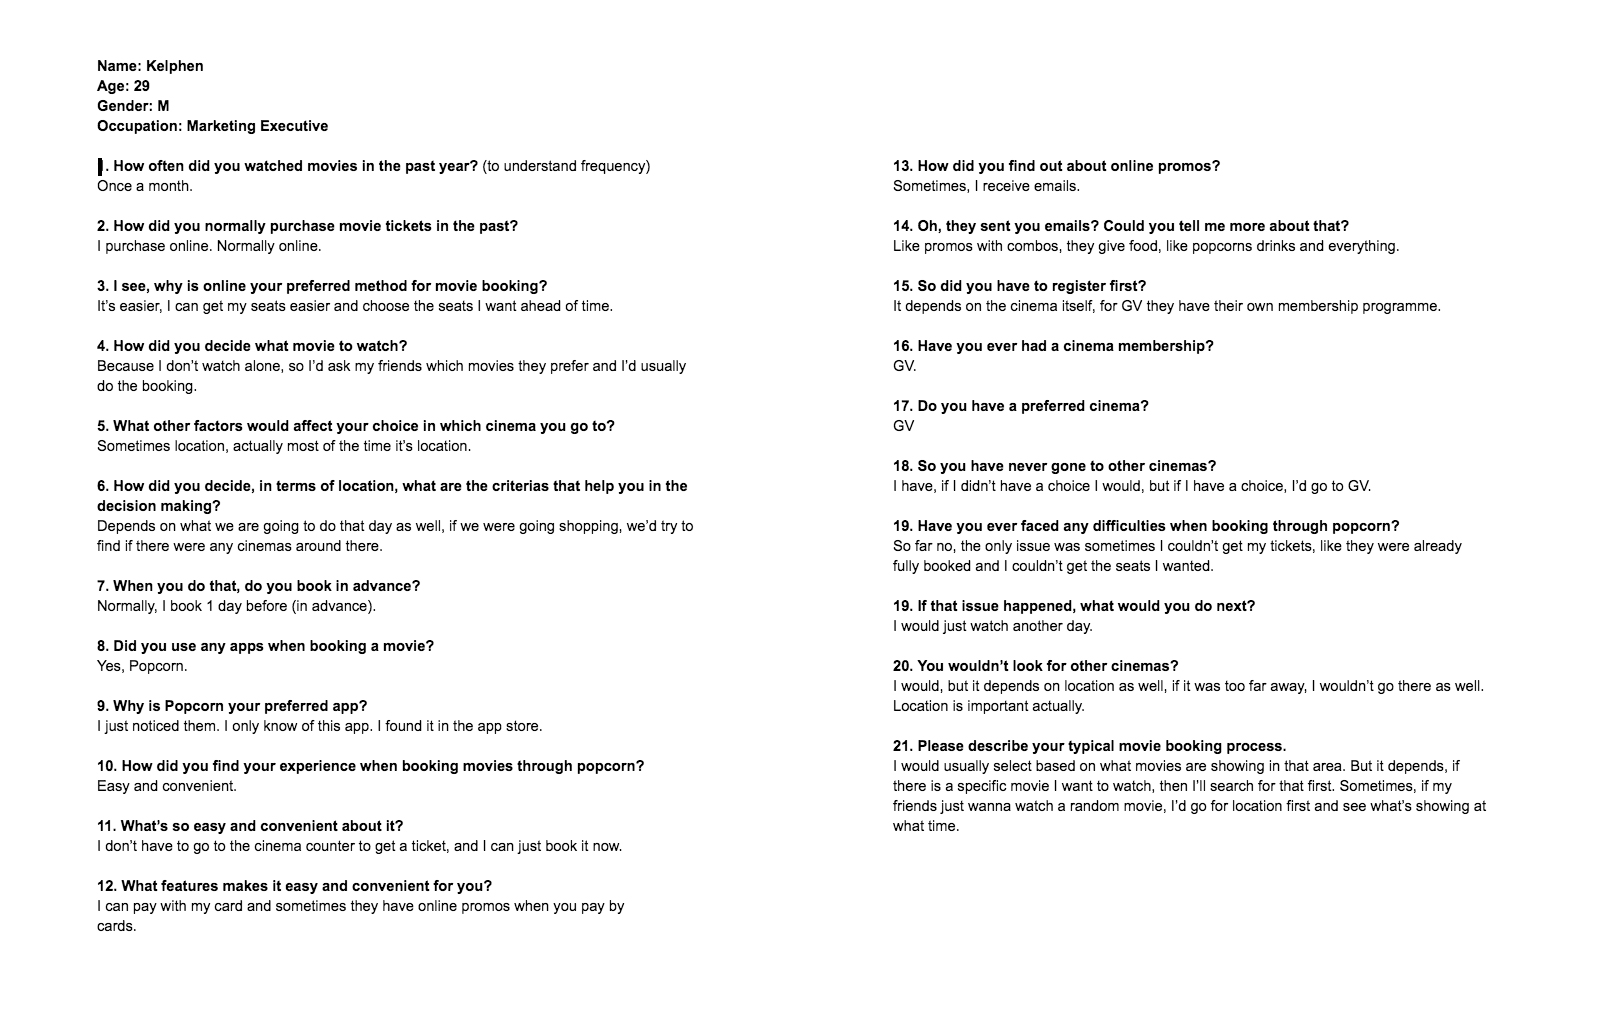 P3_UserInterview1